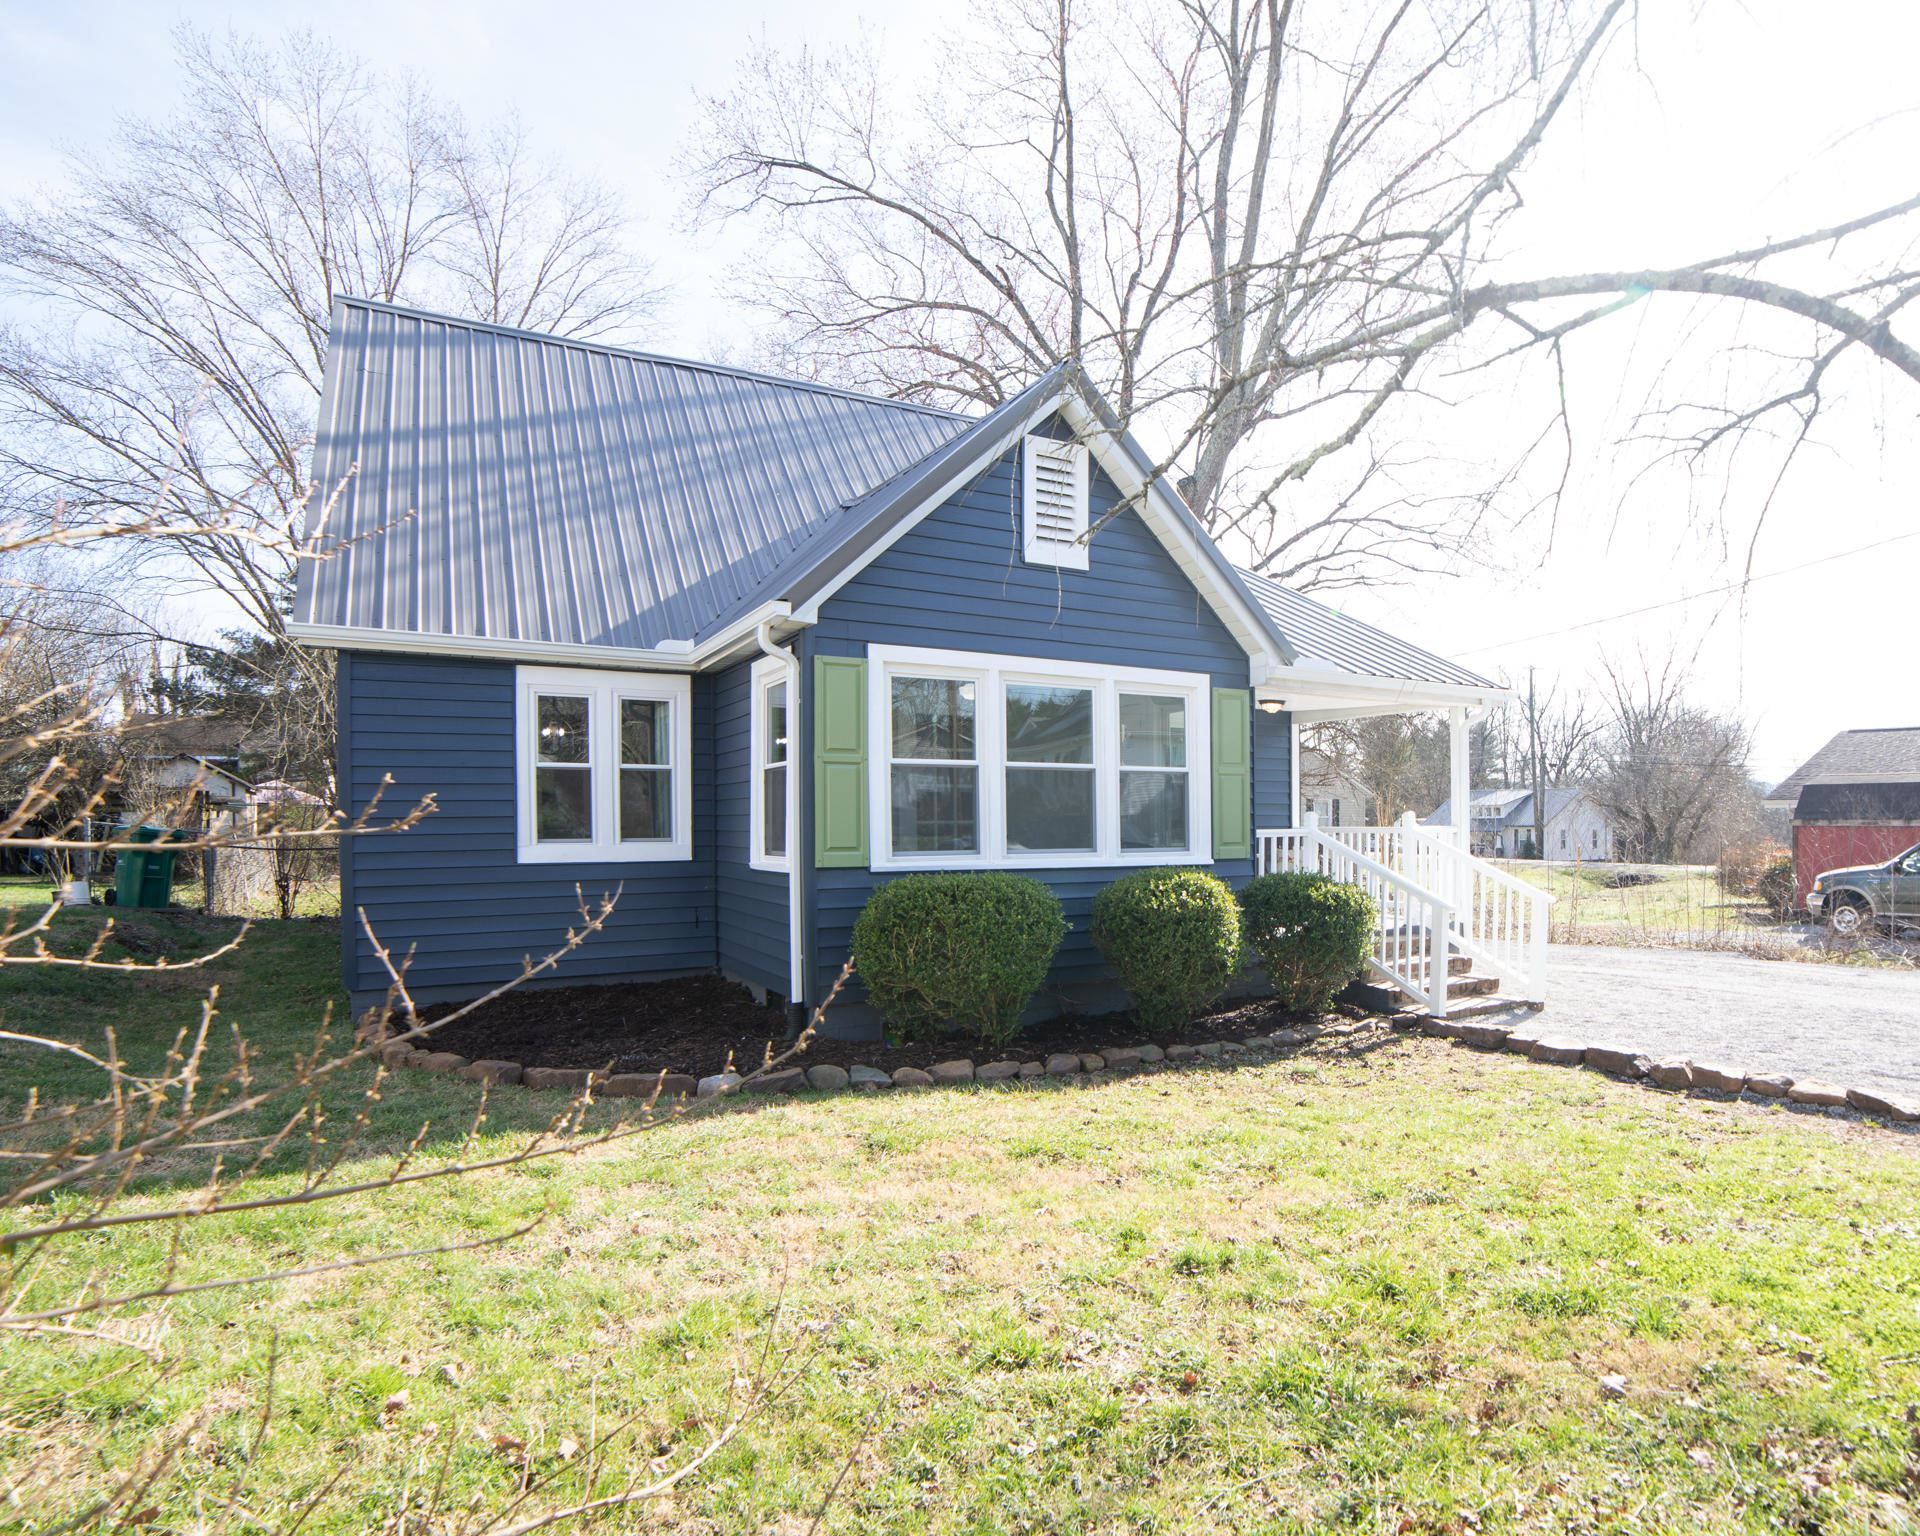 Photo of 1920 Wells Drive, Powell, TN 37849 (MLS # 1108376)